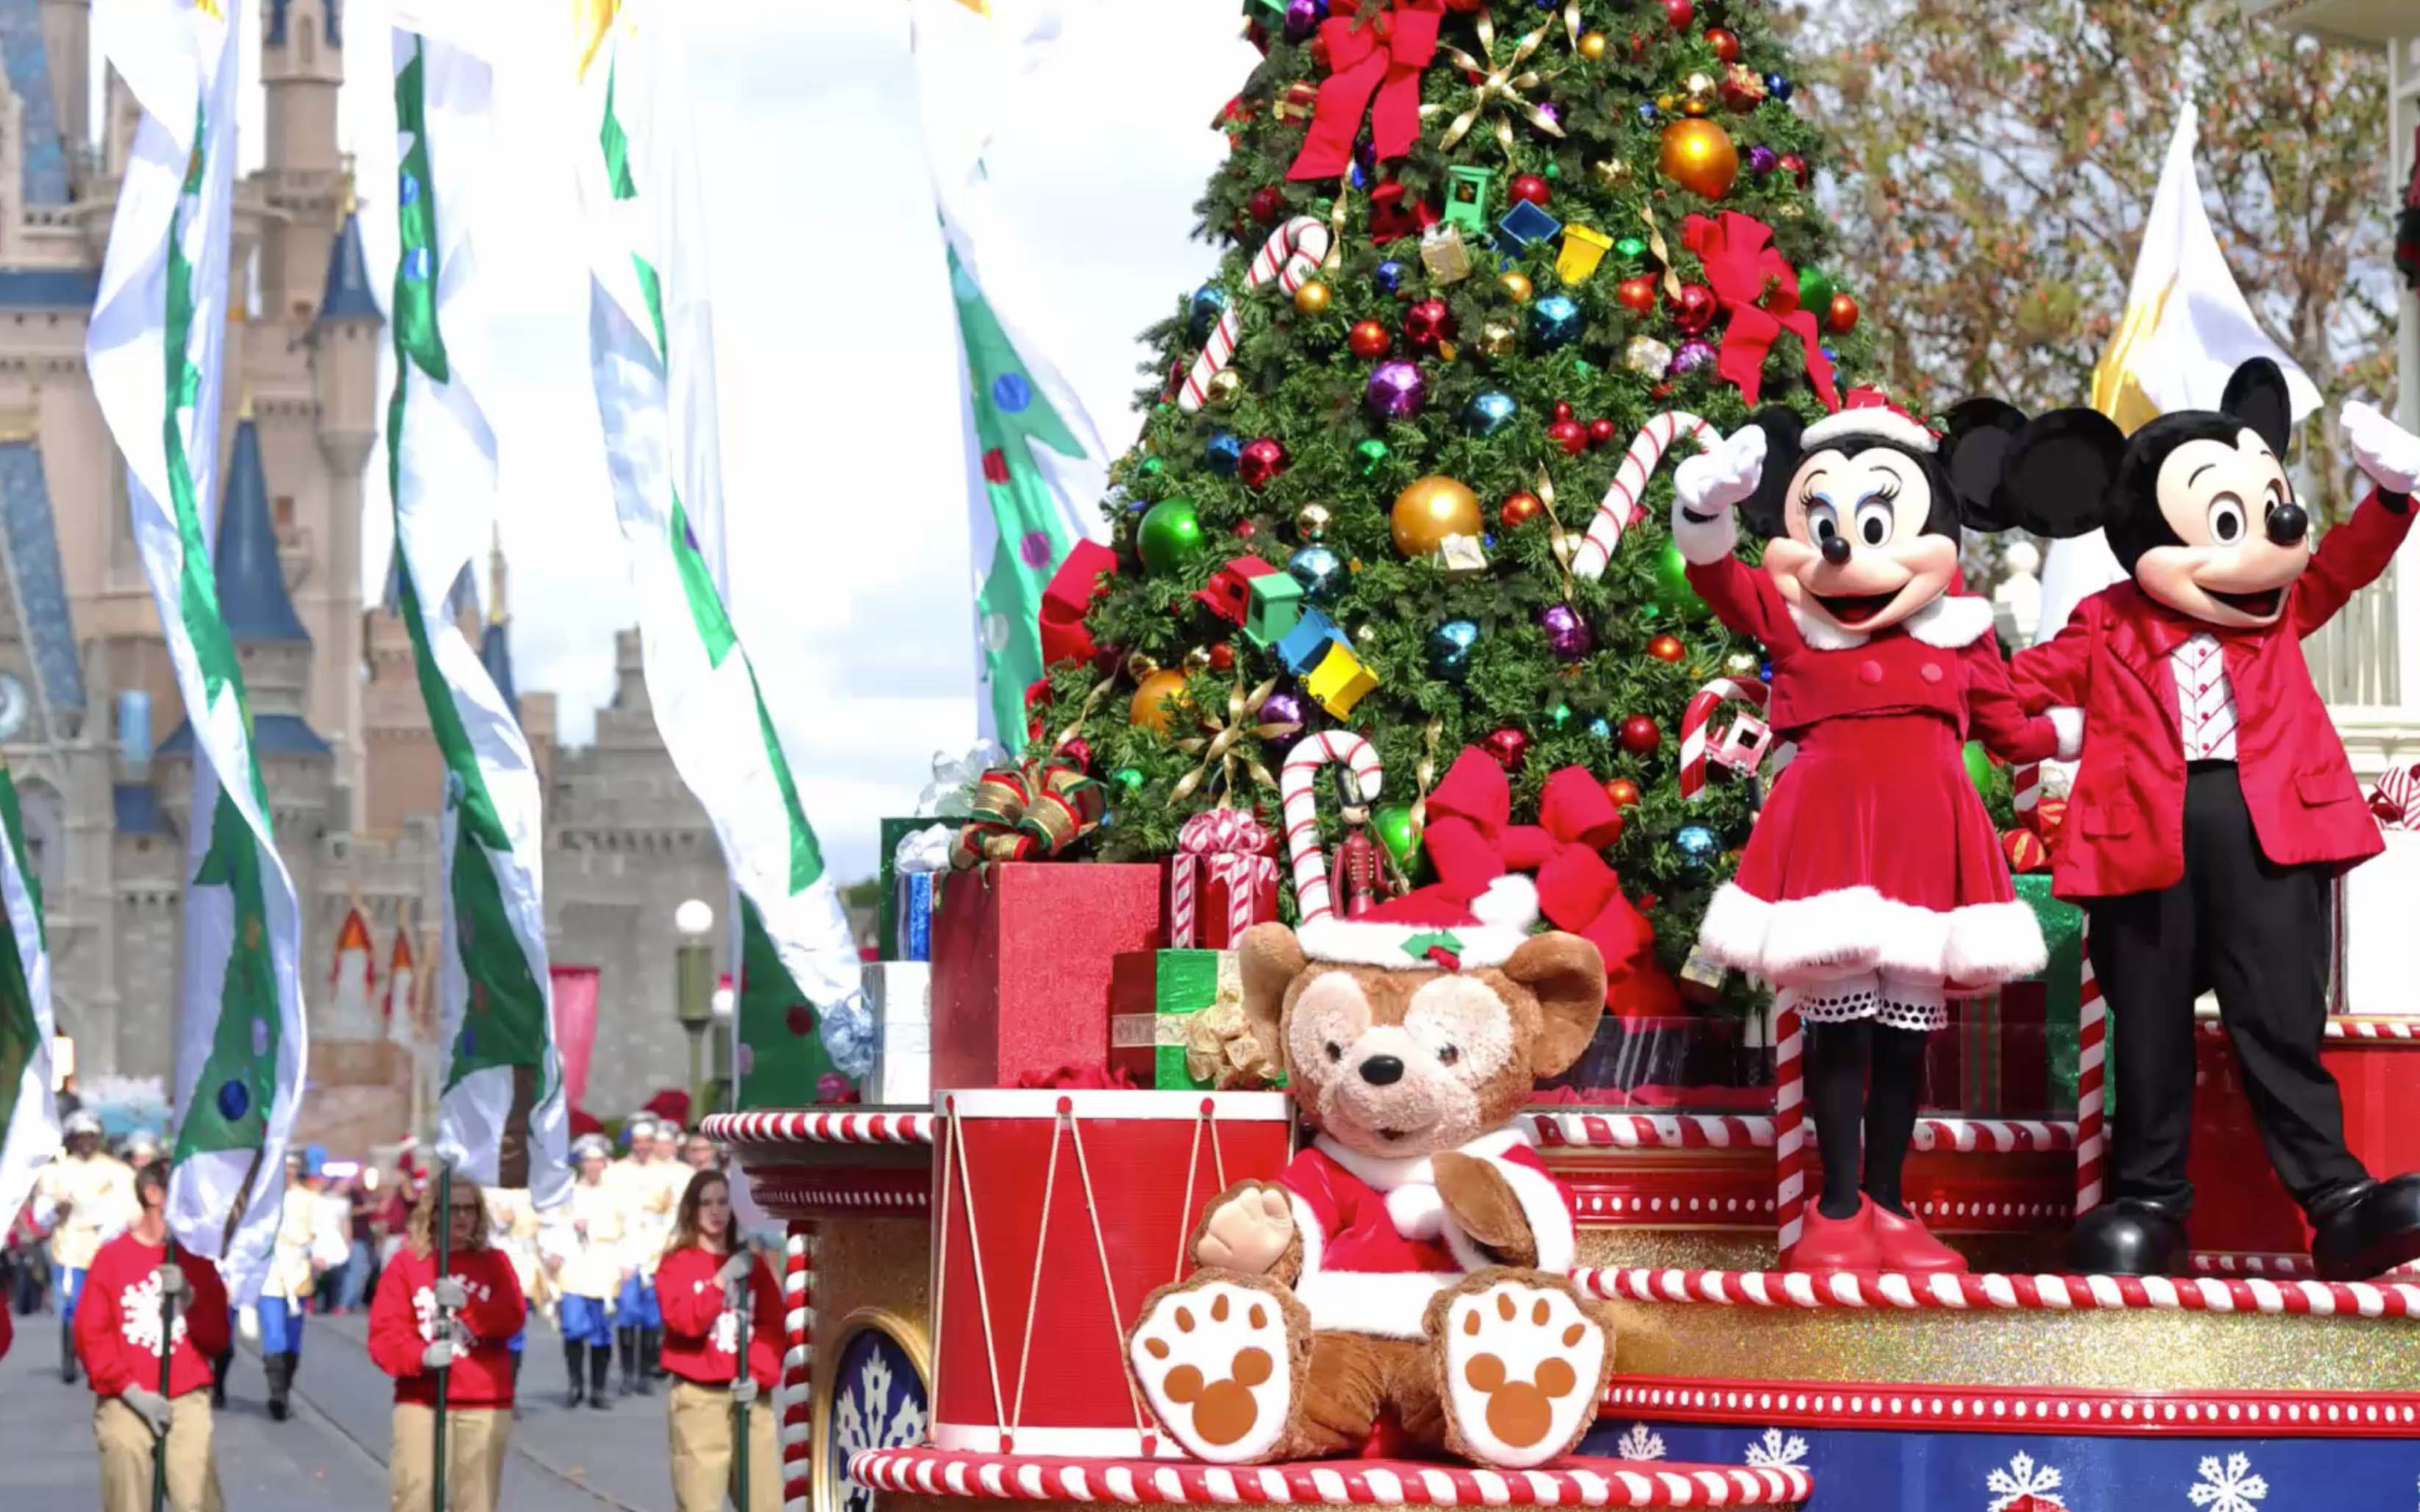 Christmas Has Come To Disney World, And We Already Can't